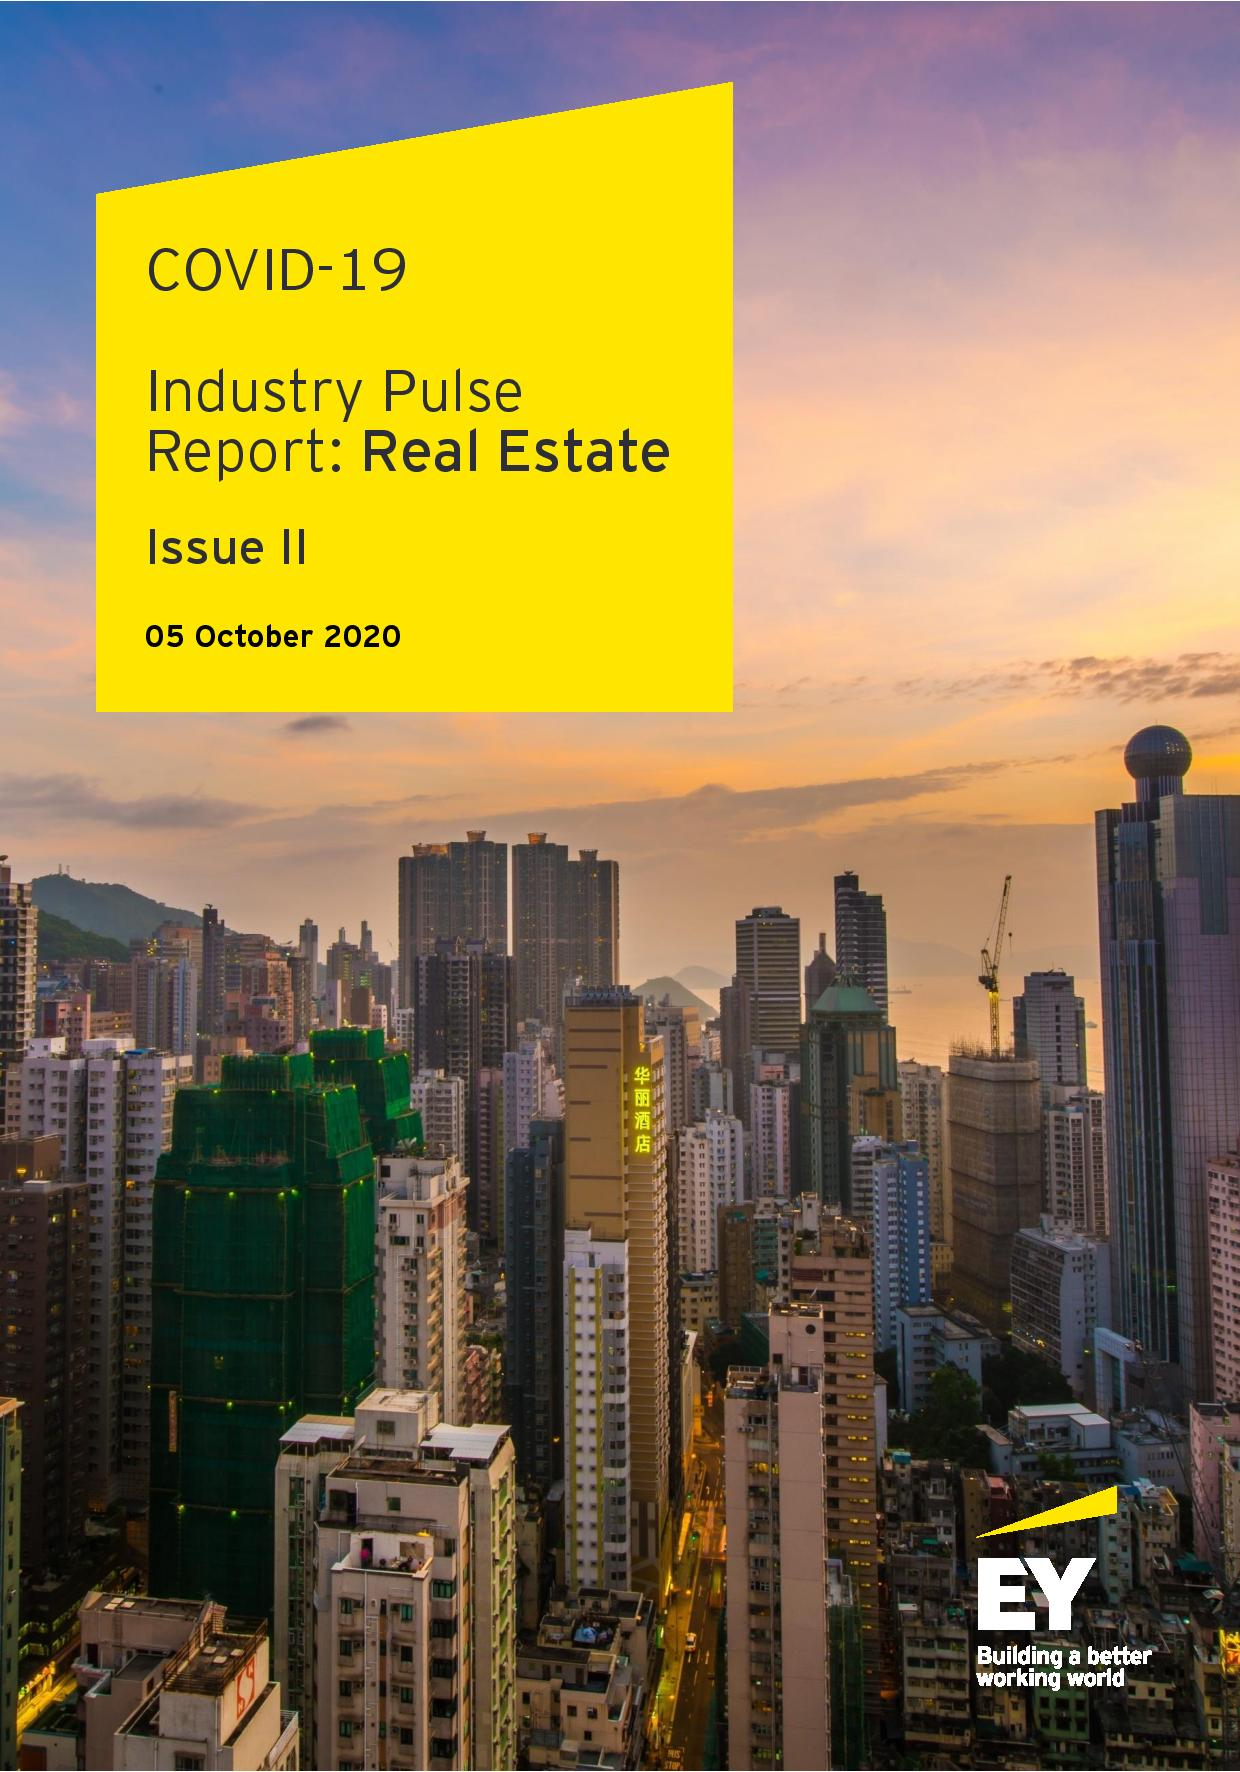 EY Cyprus: COVID-19 Industry Pulse Report: Real Estate Issue II